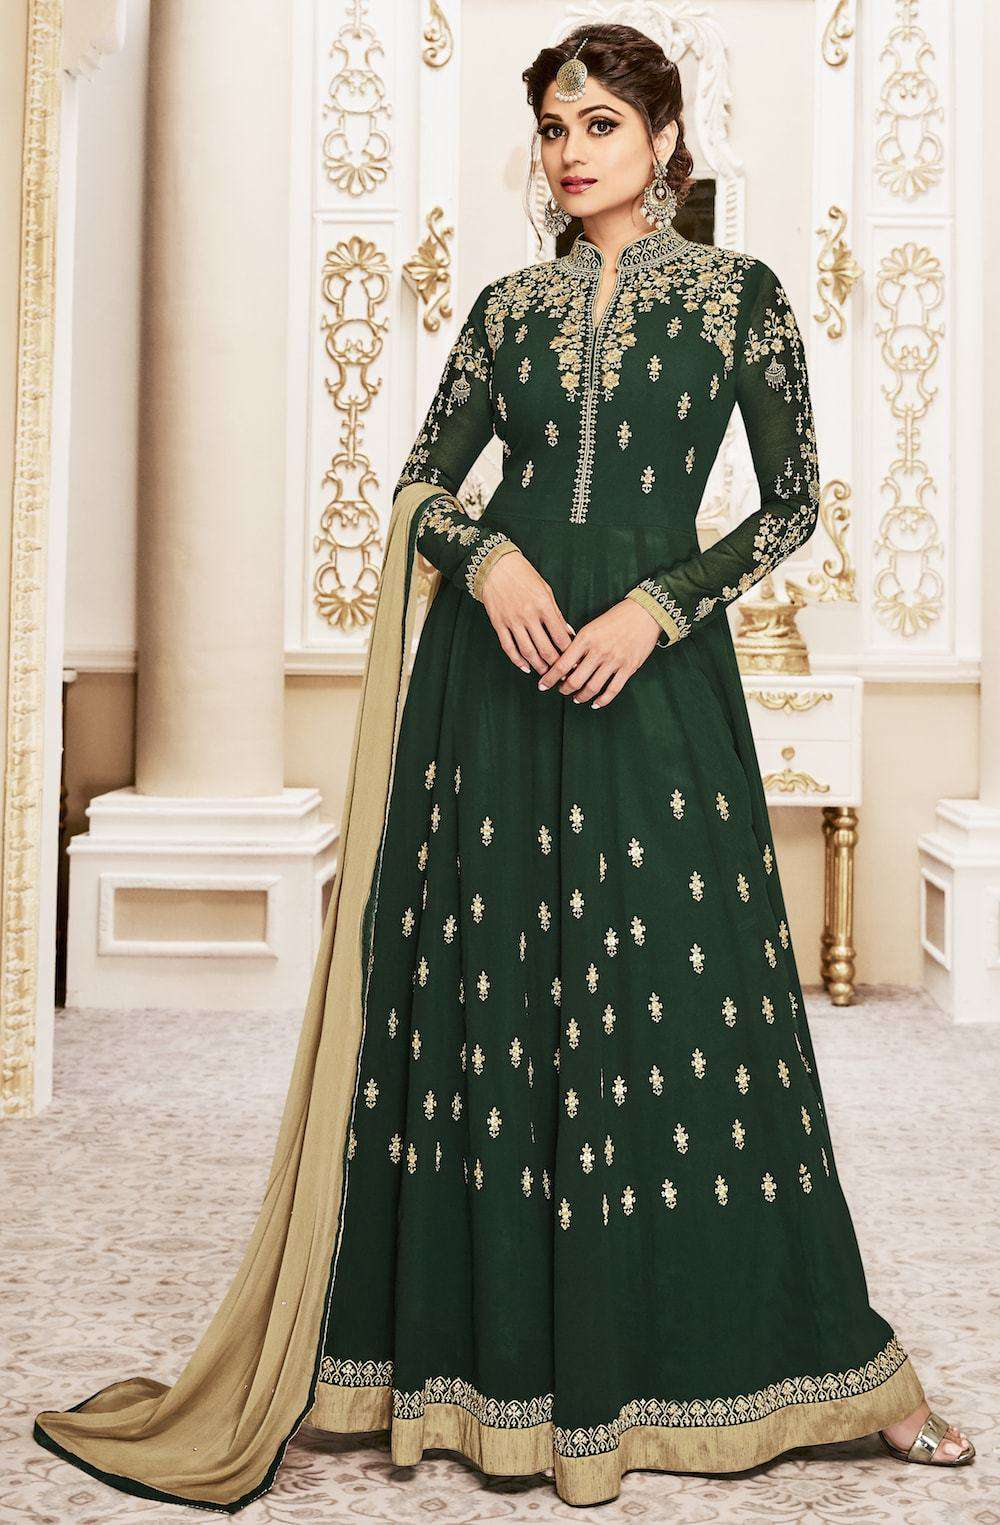 Art Embroidered Floor Length Green Anarkali Salwar Kameez MYSK-226